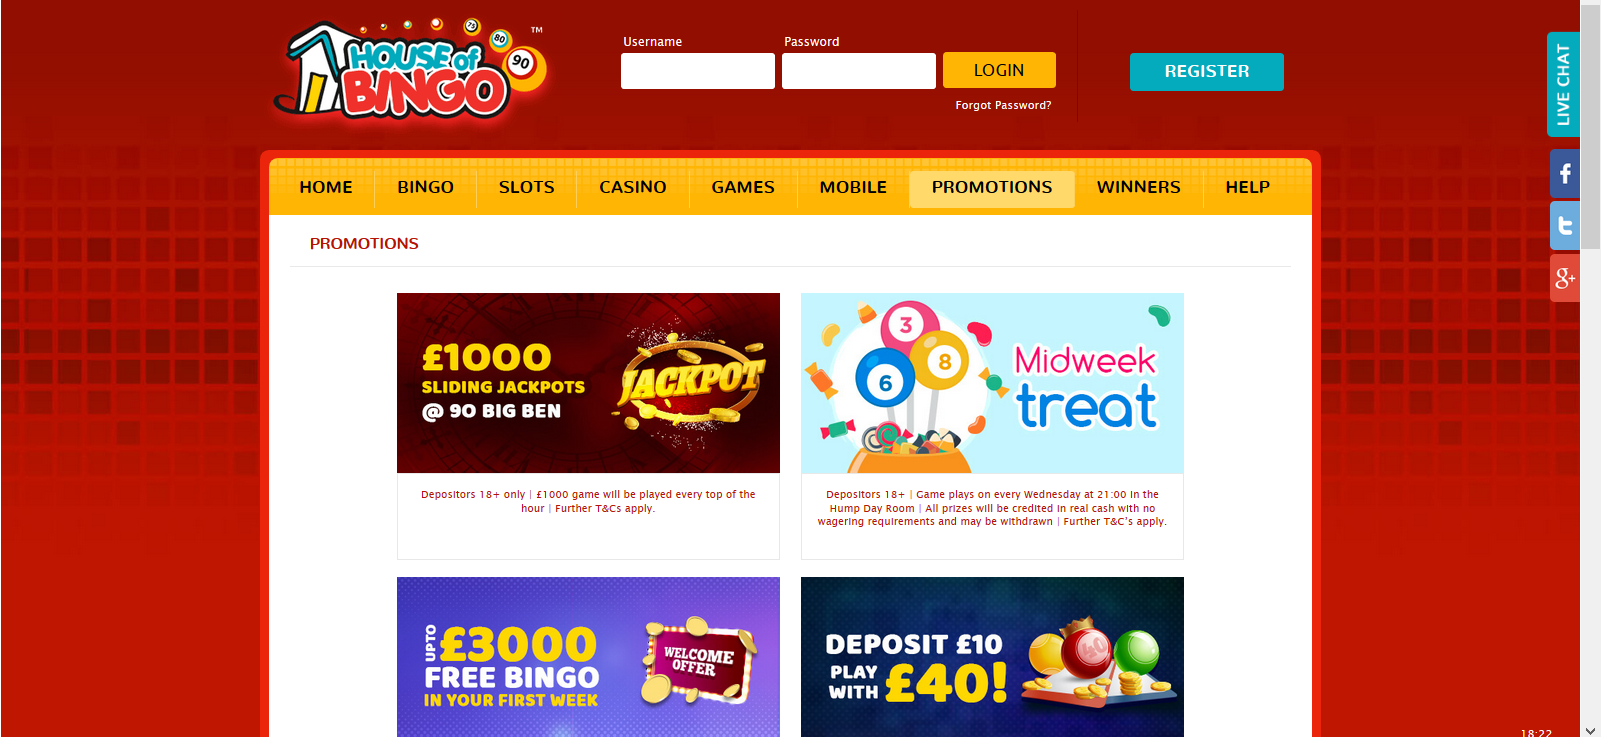 UK Bingo and Casino Games - House of Bingo